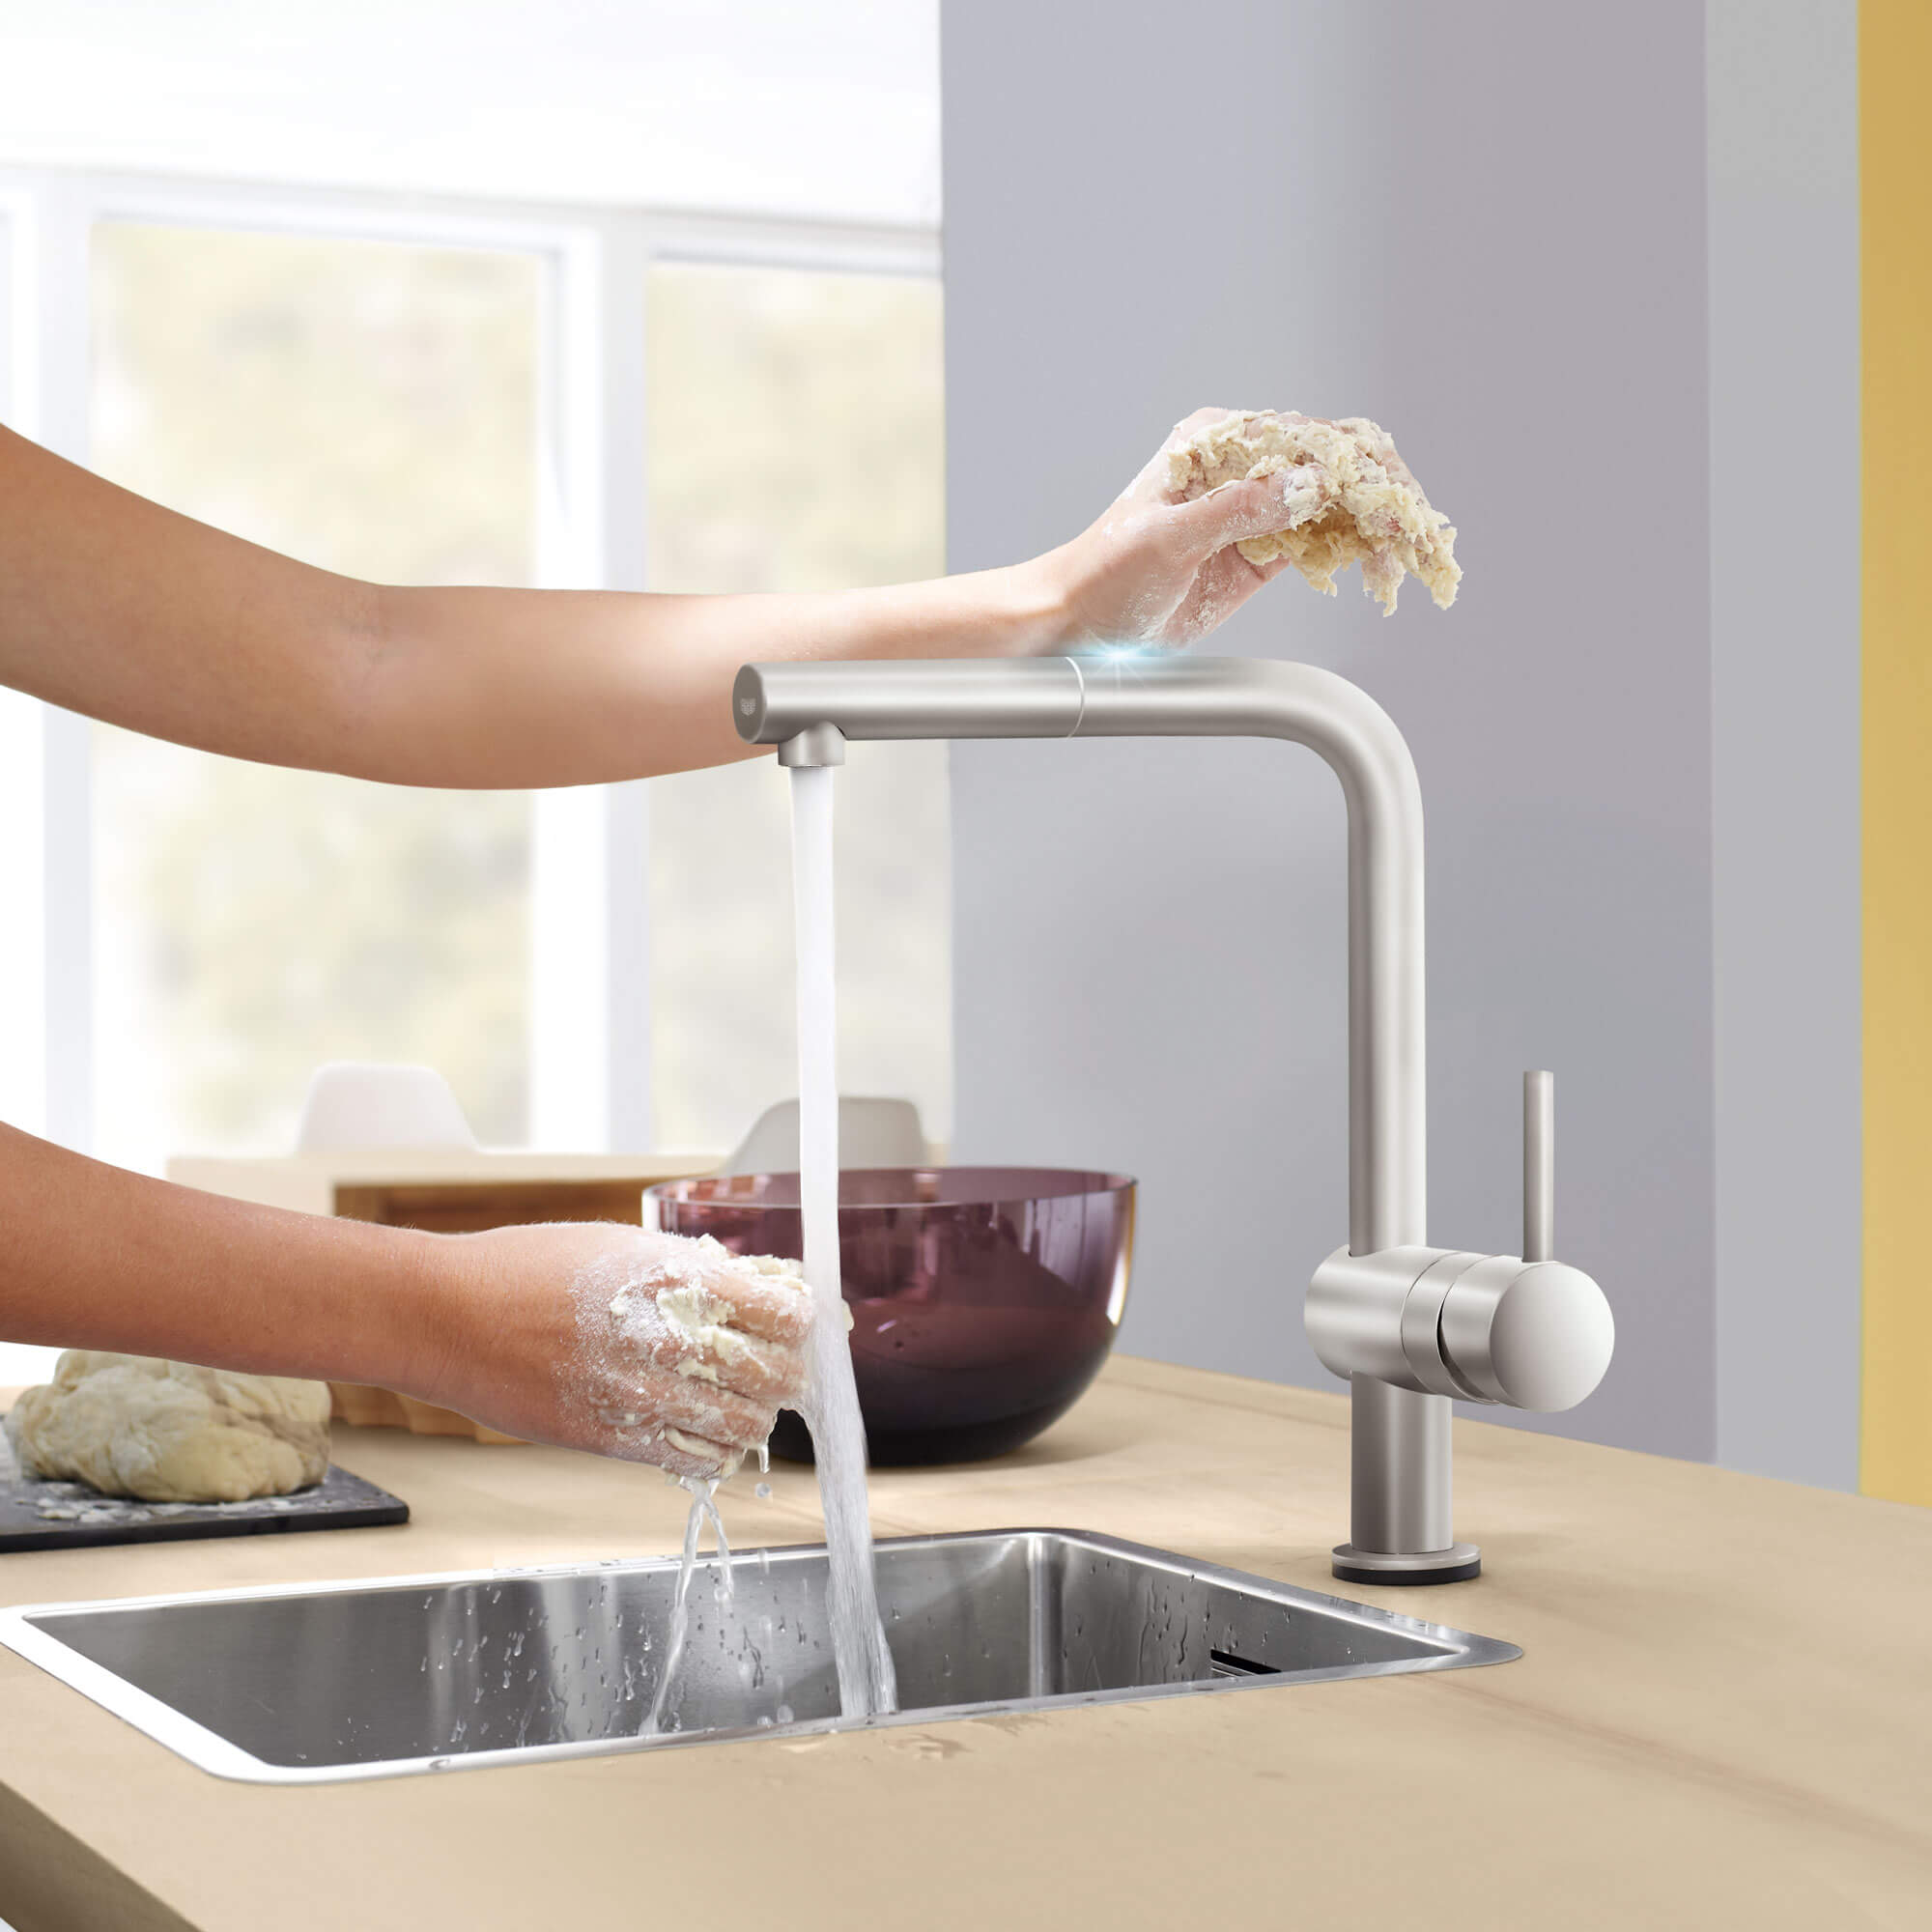 Arm using touch function for Minta Touch kitchen faucet to turn on running water